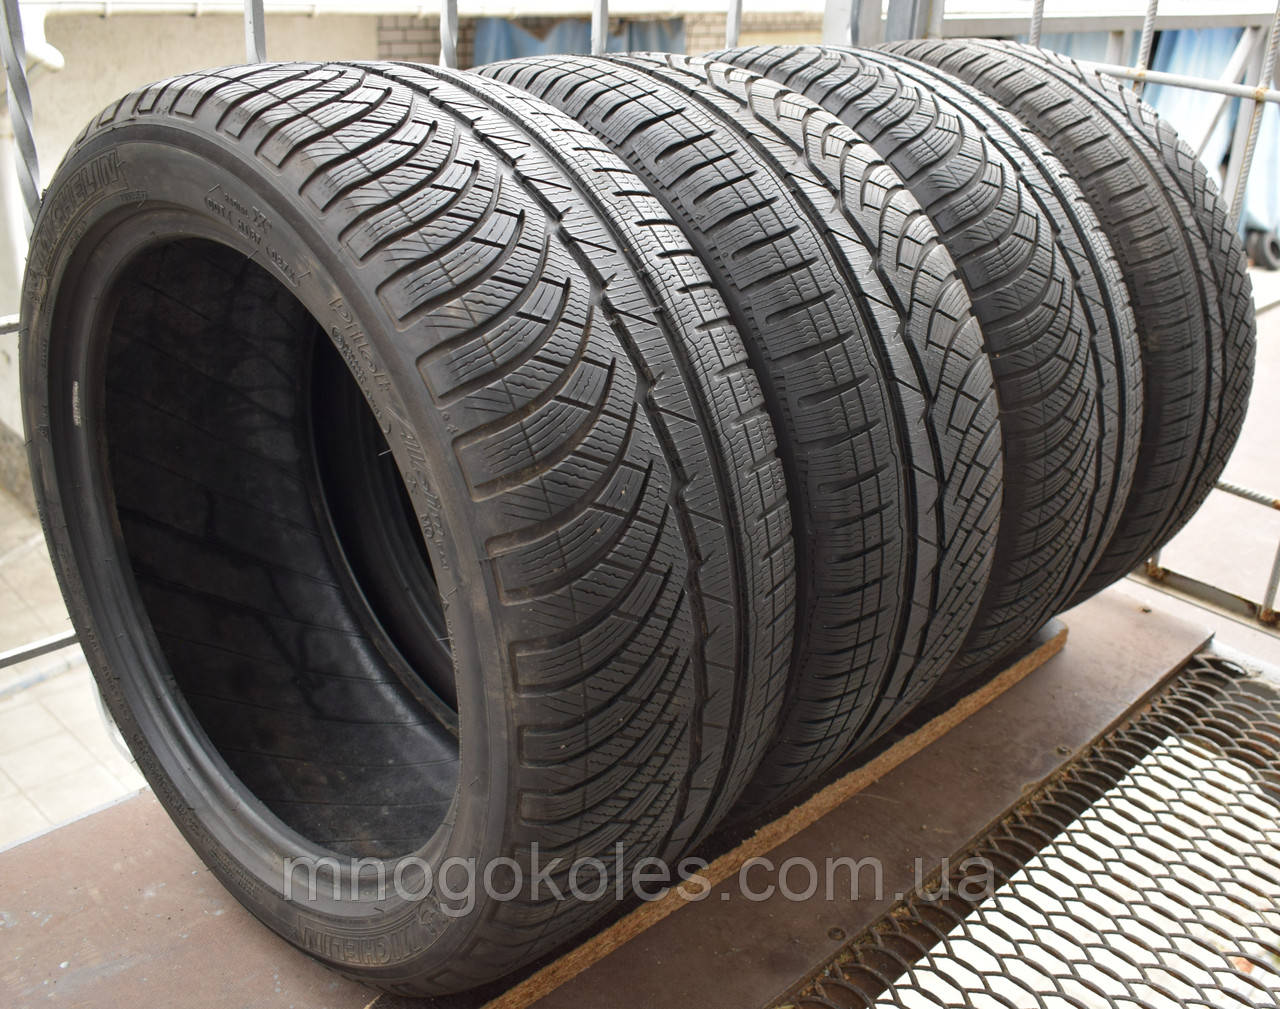 Шины б/у 245/45 R18 Michelin Pilot Alpin PA4, 2017 г., комплект